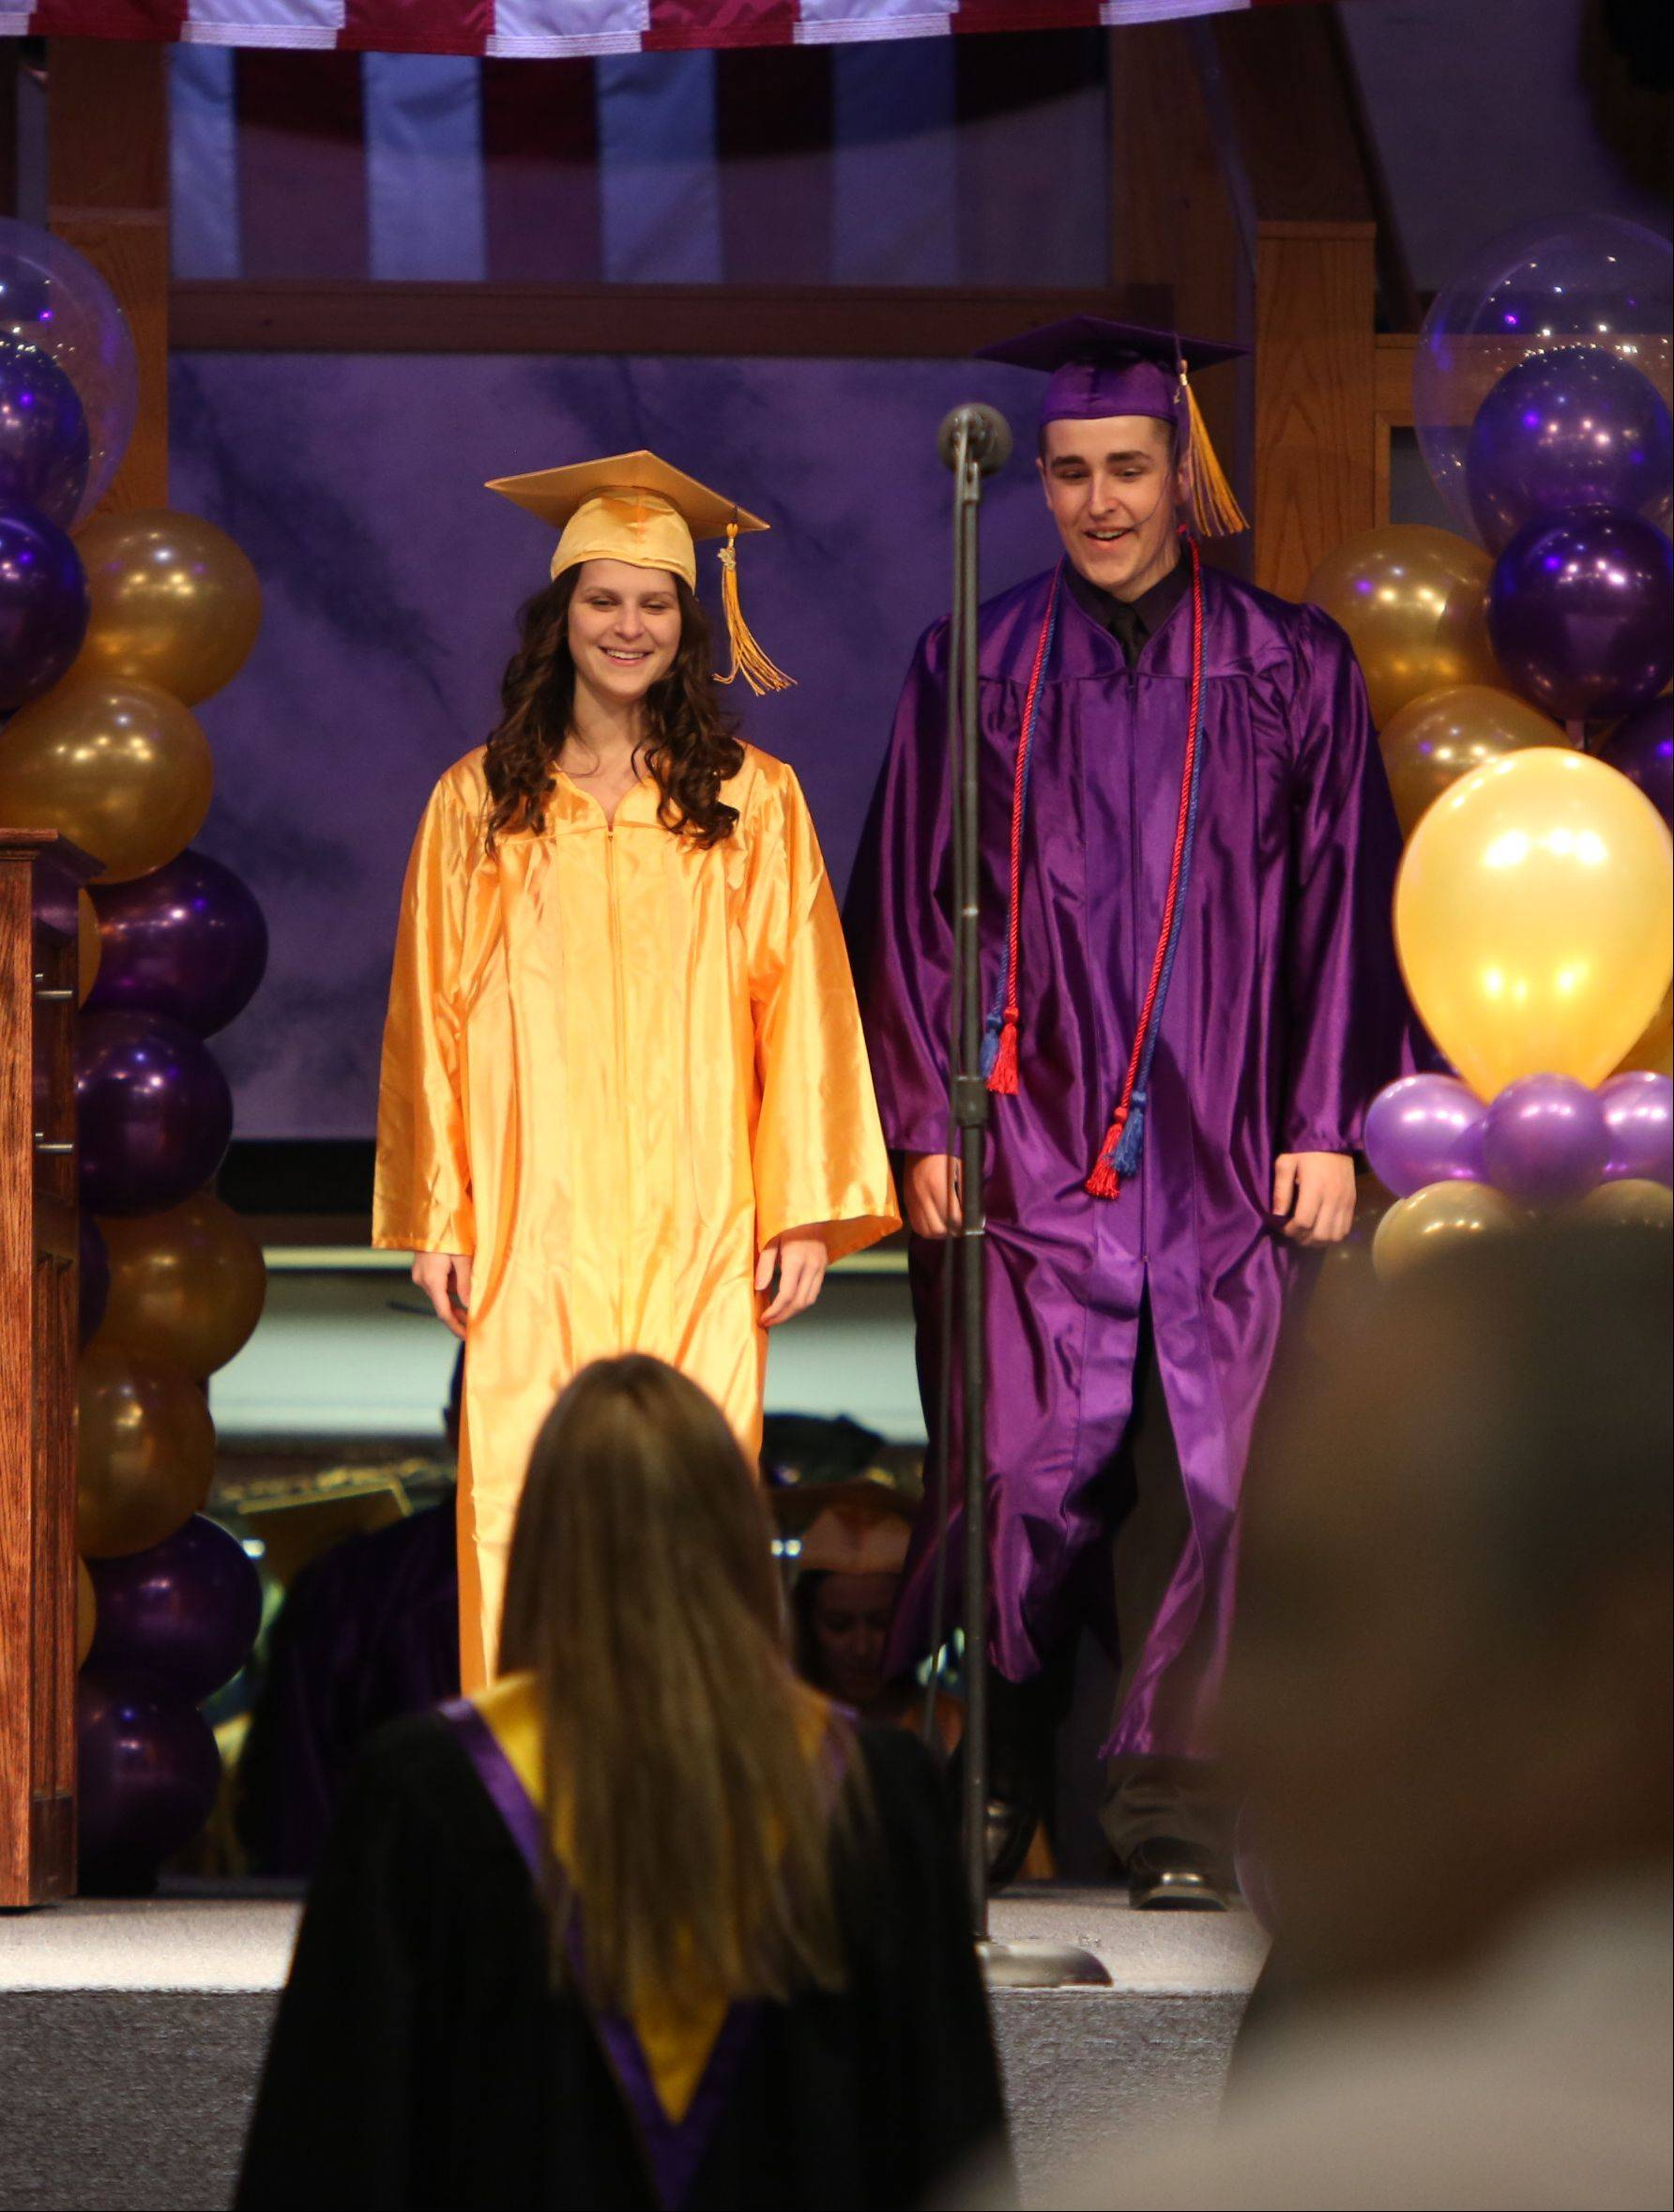 Images from the Wauconda High School graduation on Sunday, May 19 in Lake Zurich.